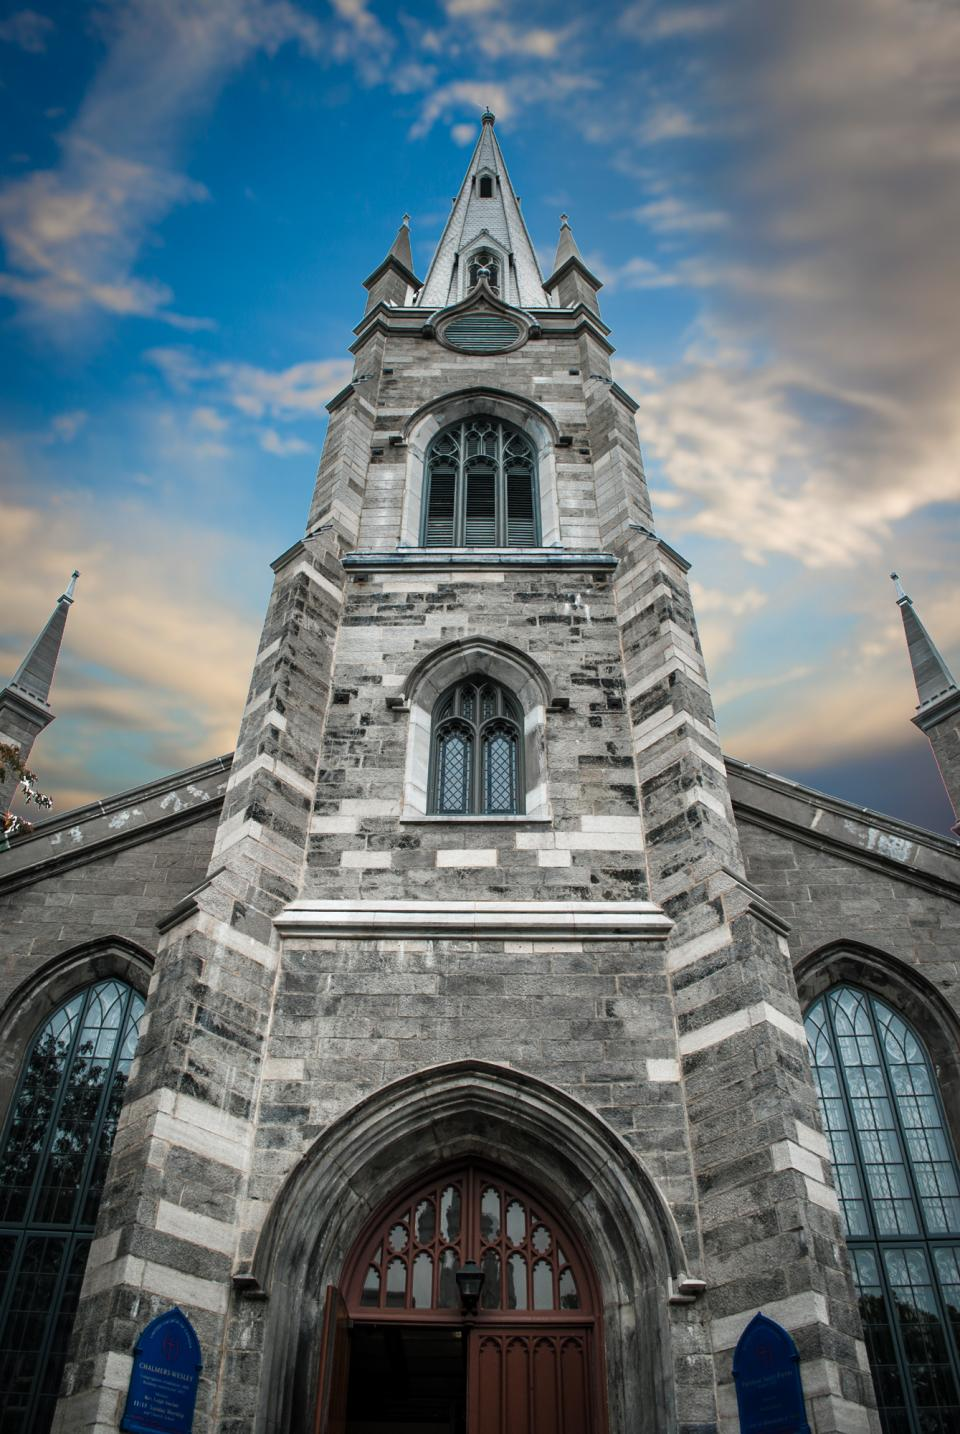 church, religion, catholic, building, architectural, , concrete, glass, window, door, wooden, sky, clouds